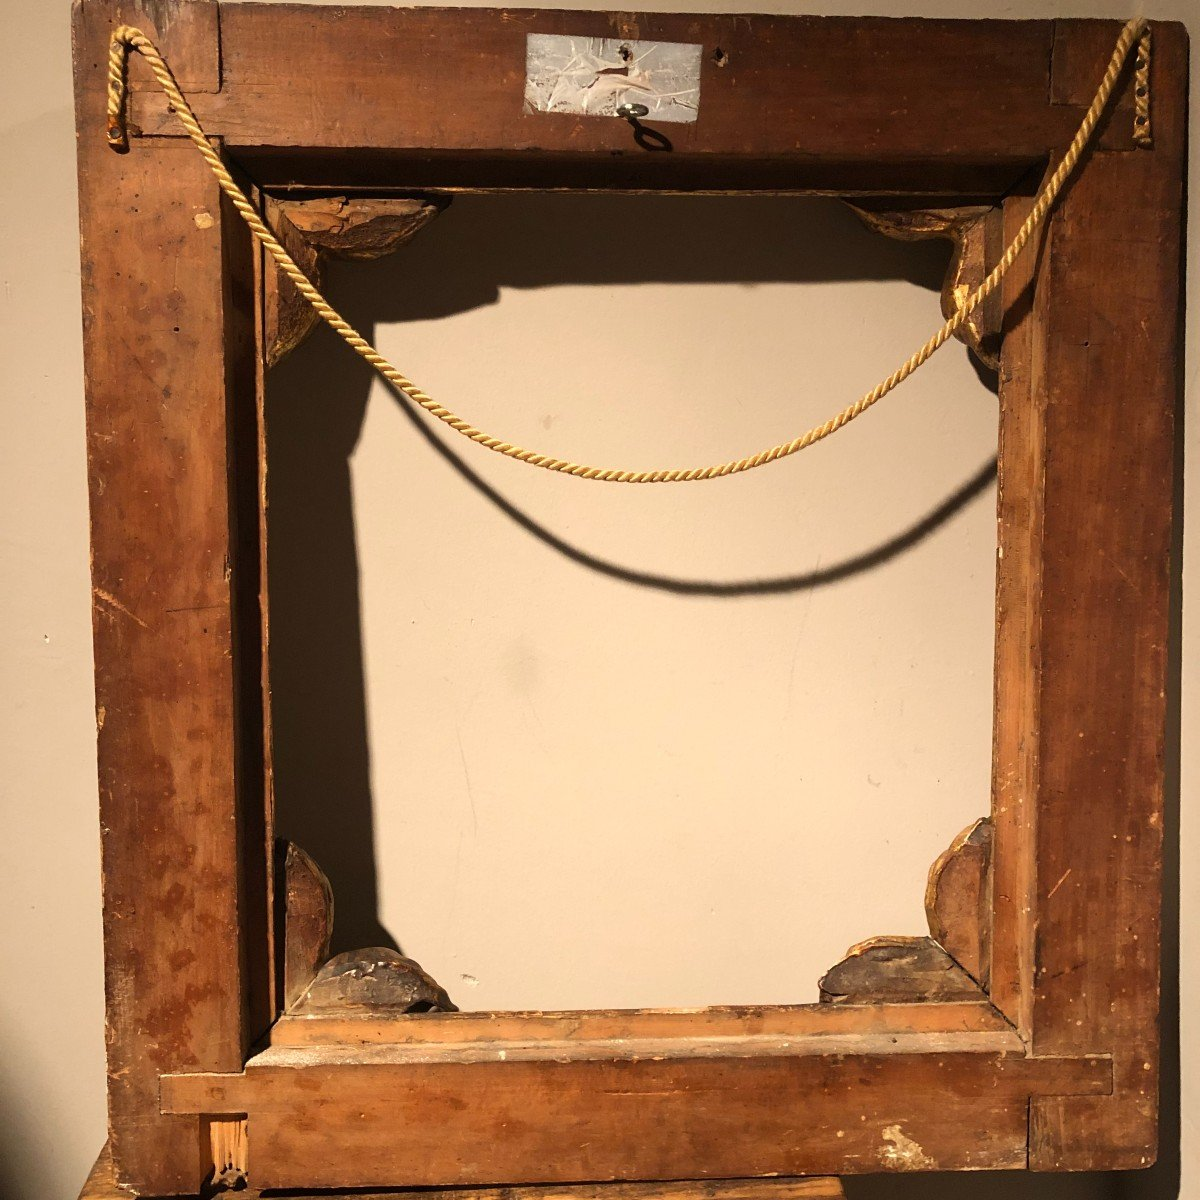 Spanish Frame In Carved Golden Wood From The End Of The Eighteenth Century.-photo-2